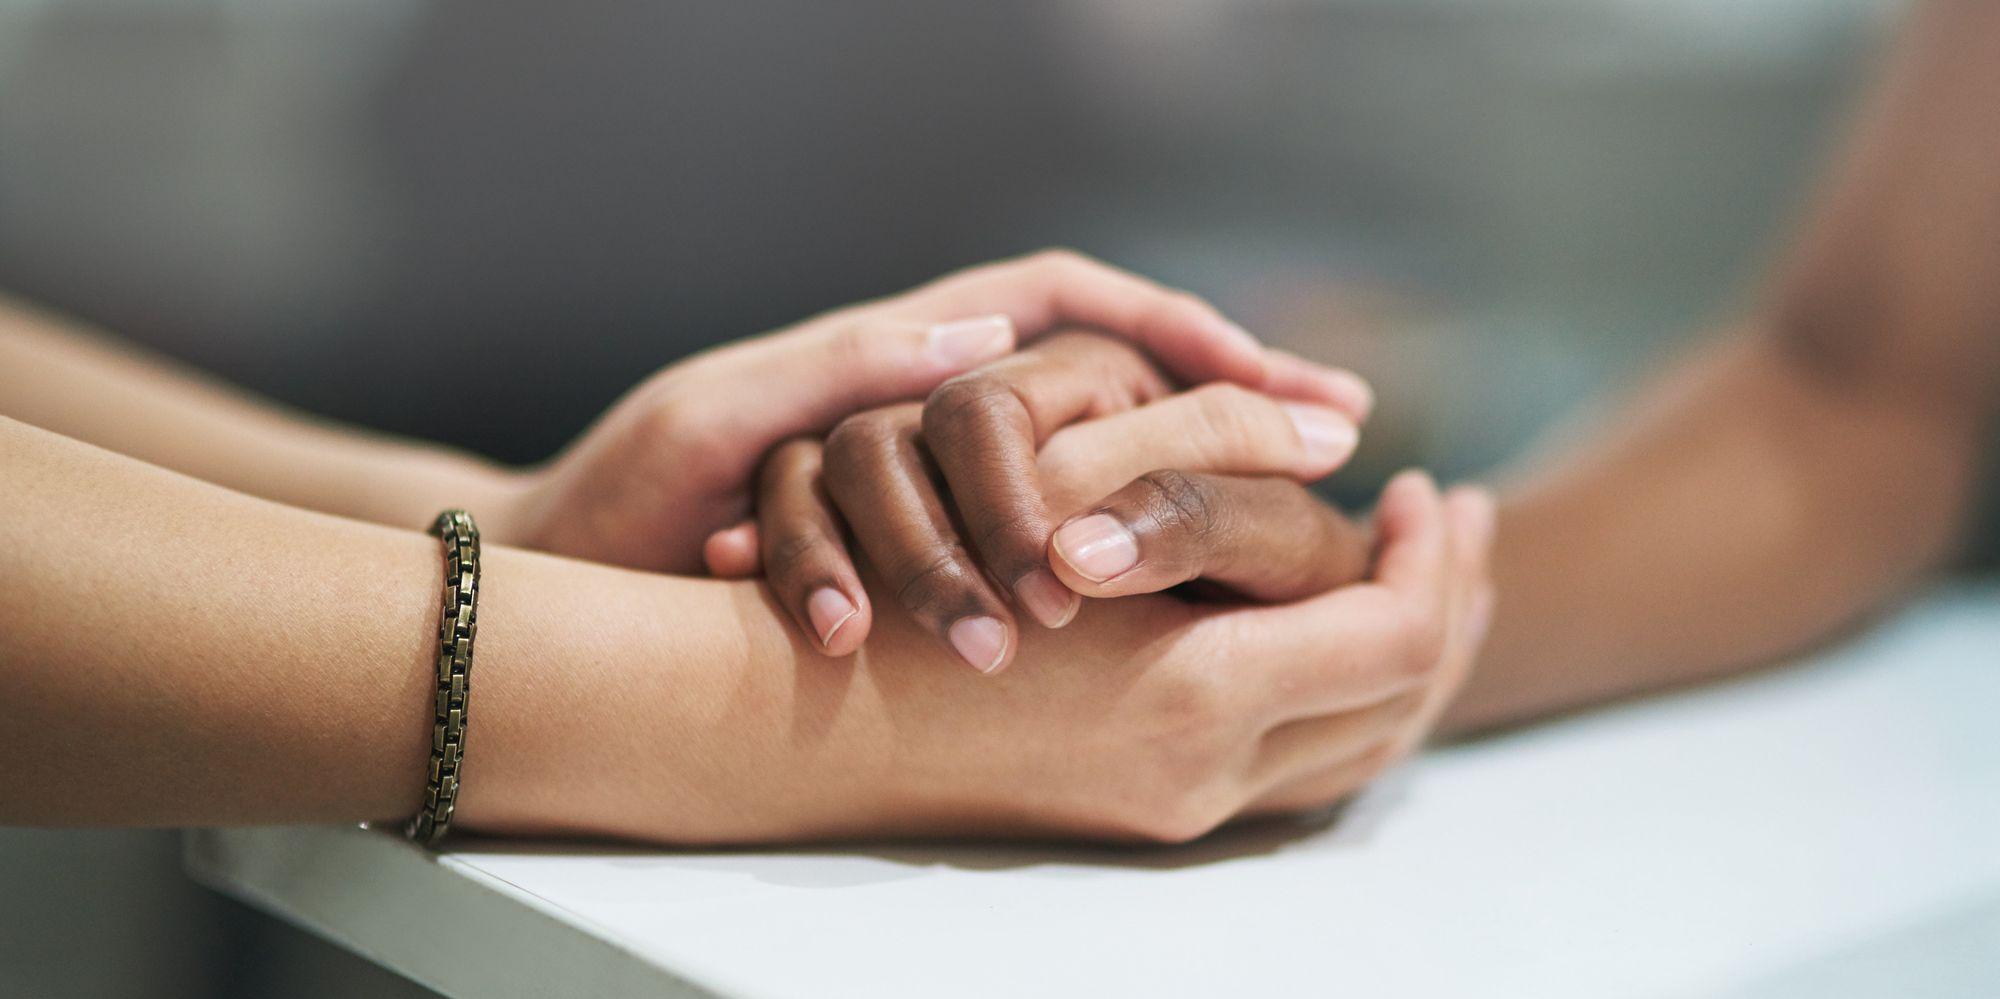 how to talk to friend who is grieving